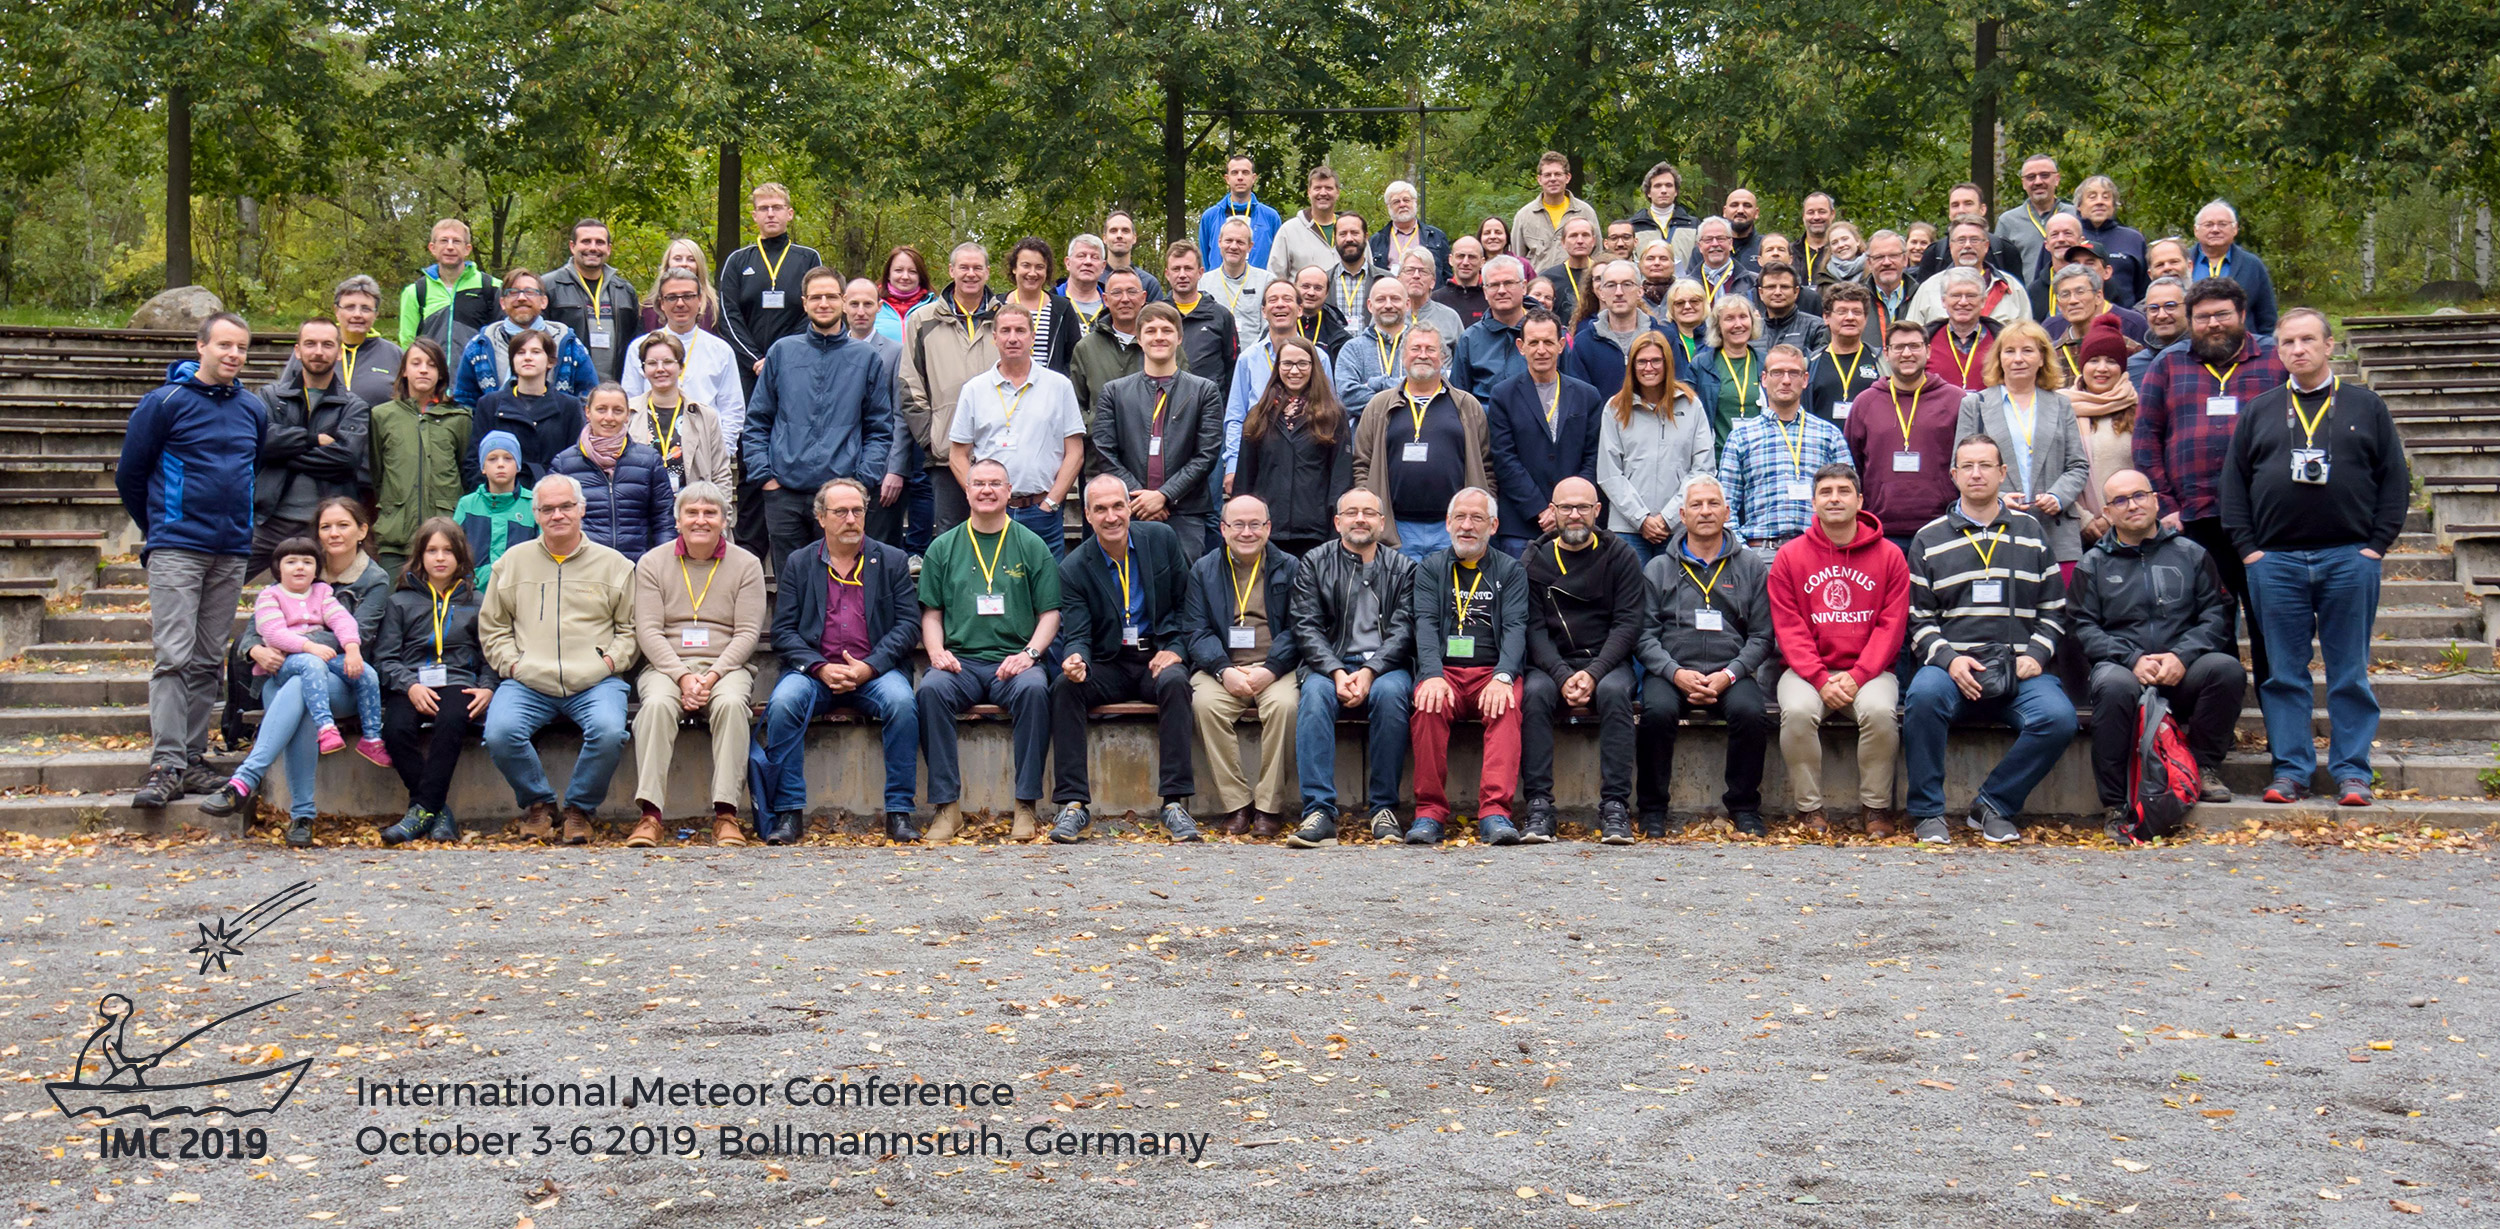 IMC 2019 participants picture. 99 people attended the conference which occured in Bollmansruh, Germany. Credit: Photo Mariusz Wiśniewski